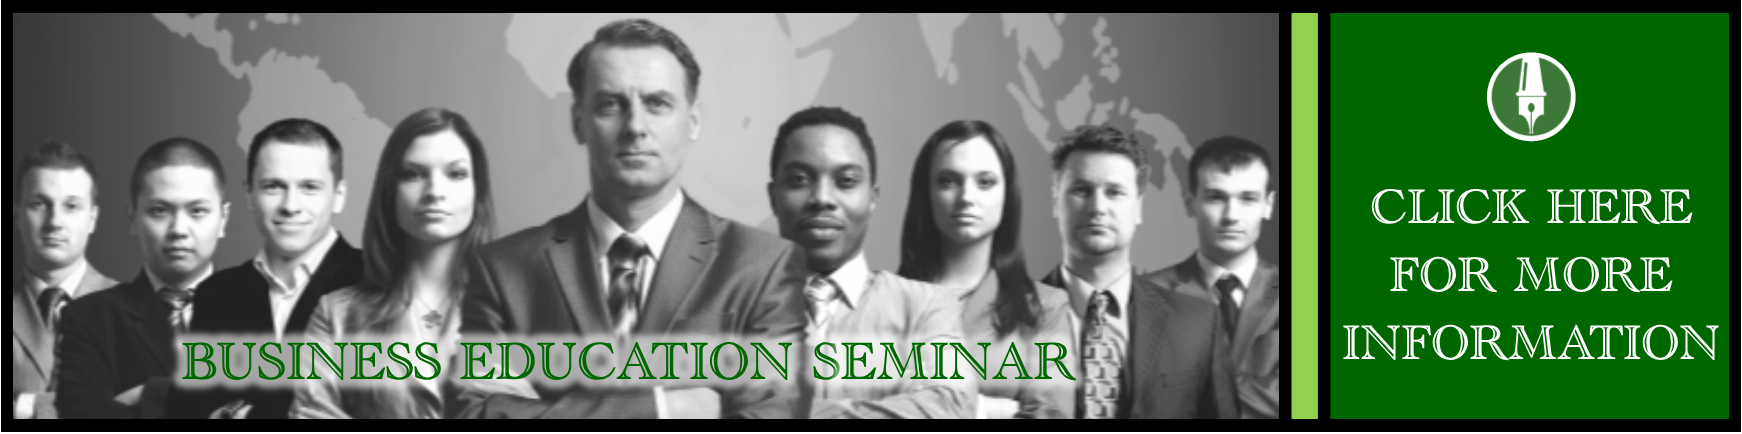 2017-Business-Education-Seminar-Banner.png